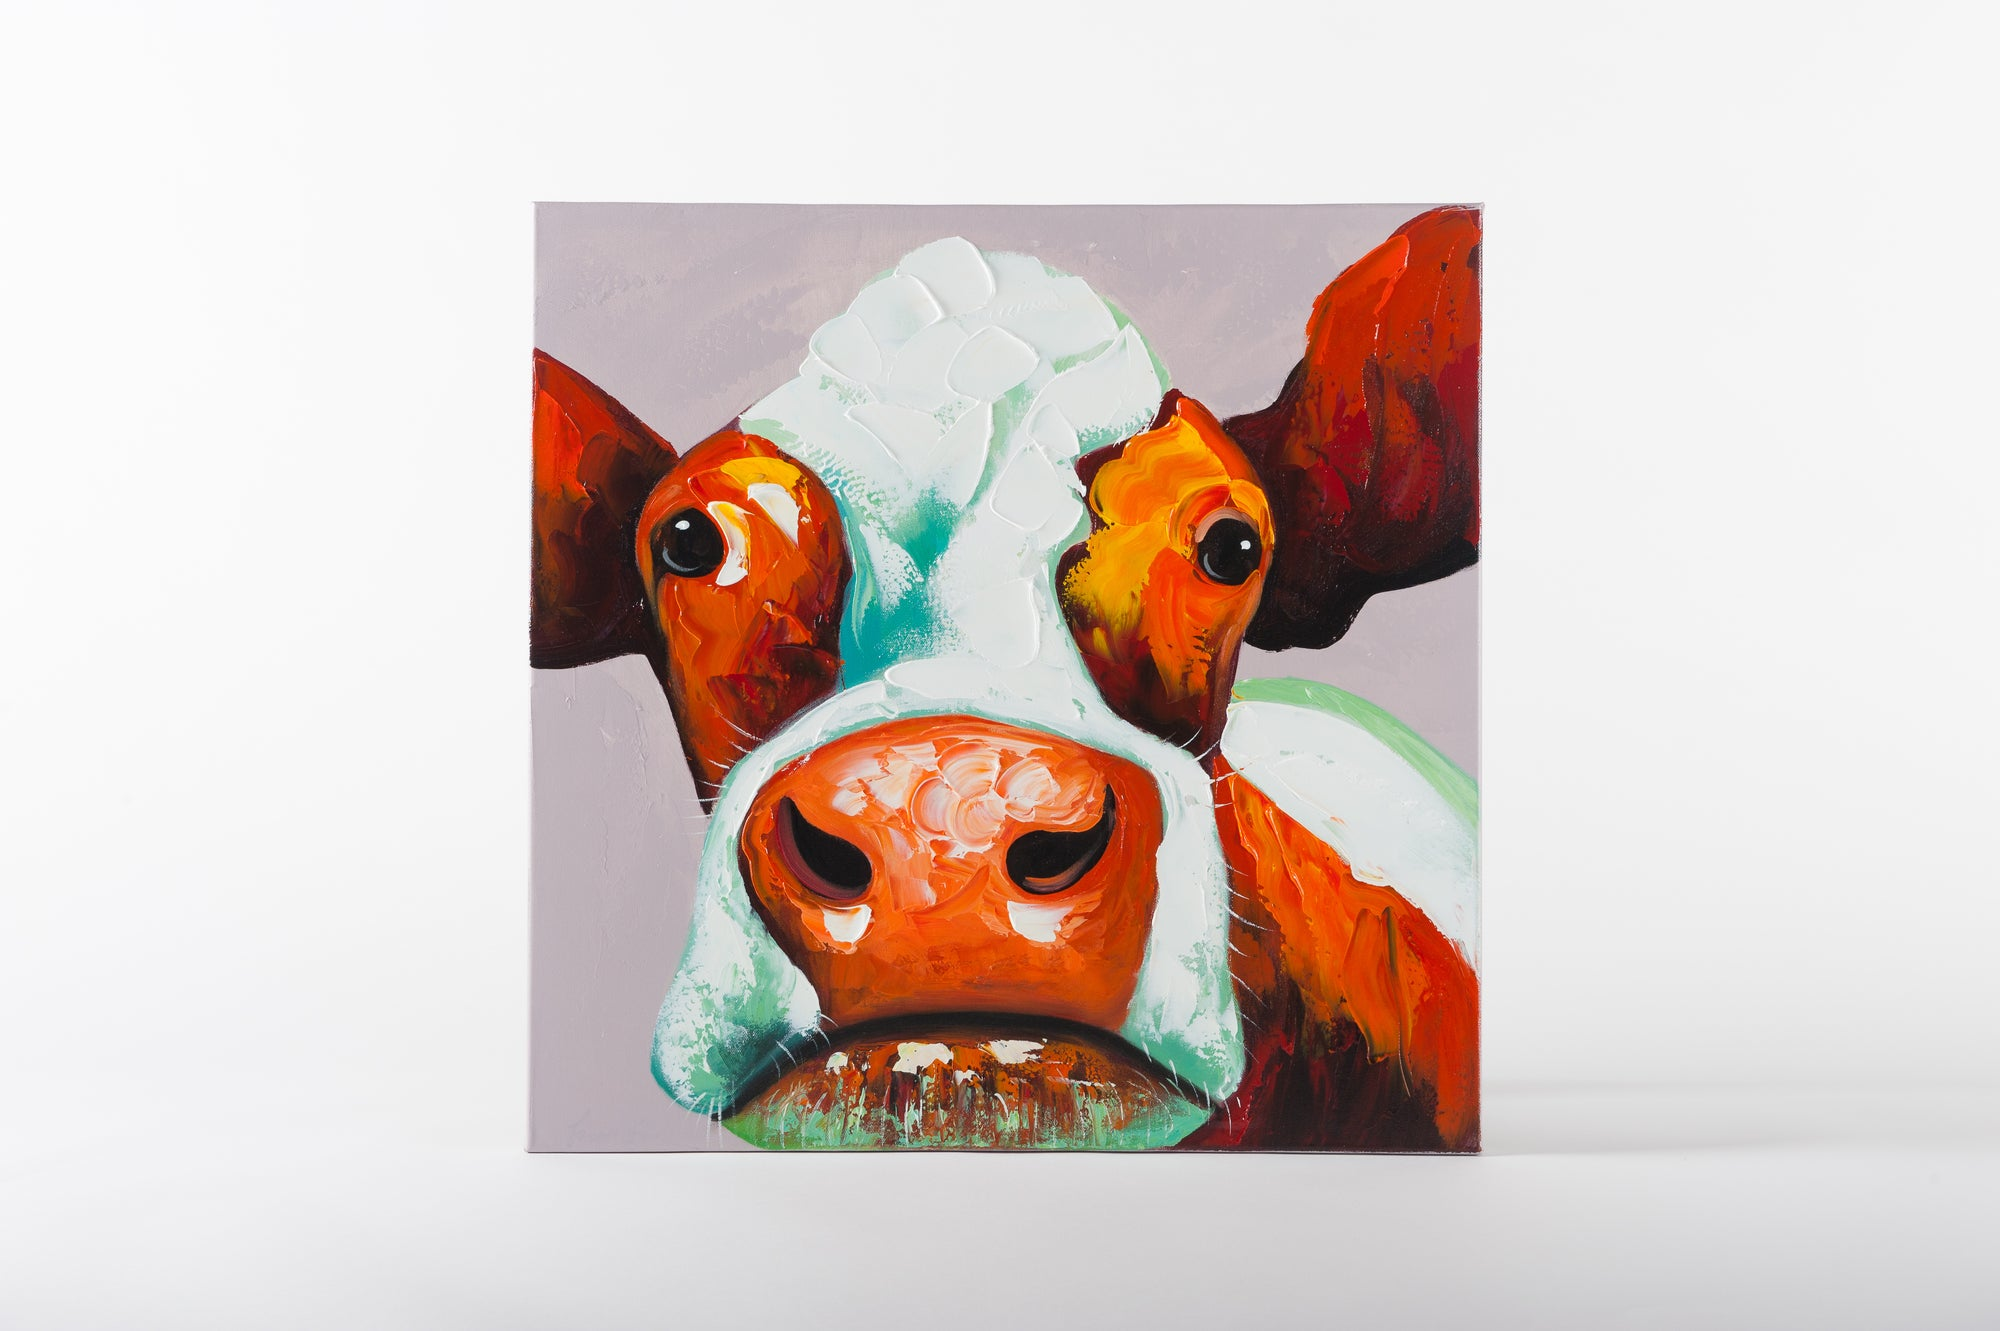 how now brown cow grey  hand painted animal wall art on canvas - Fervor + Hue